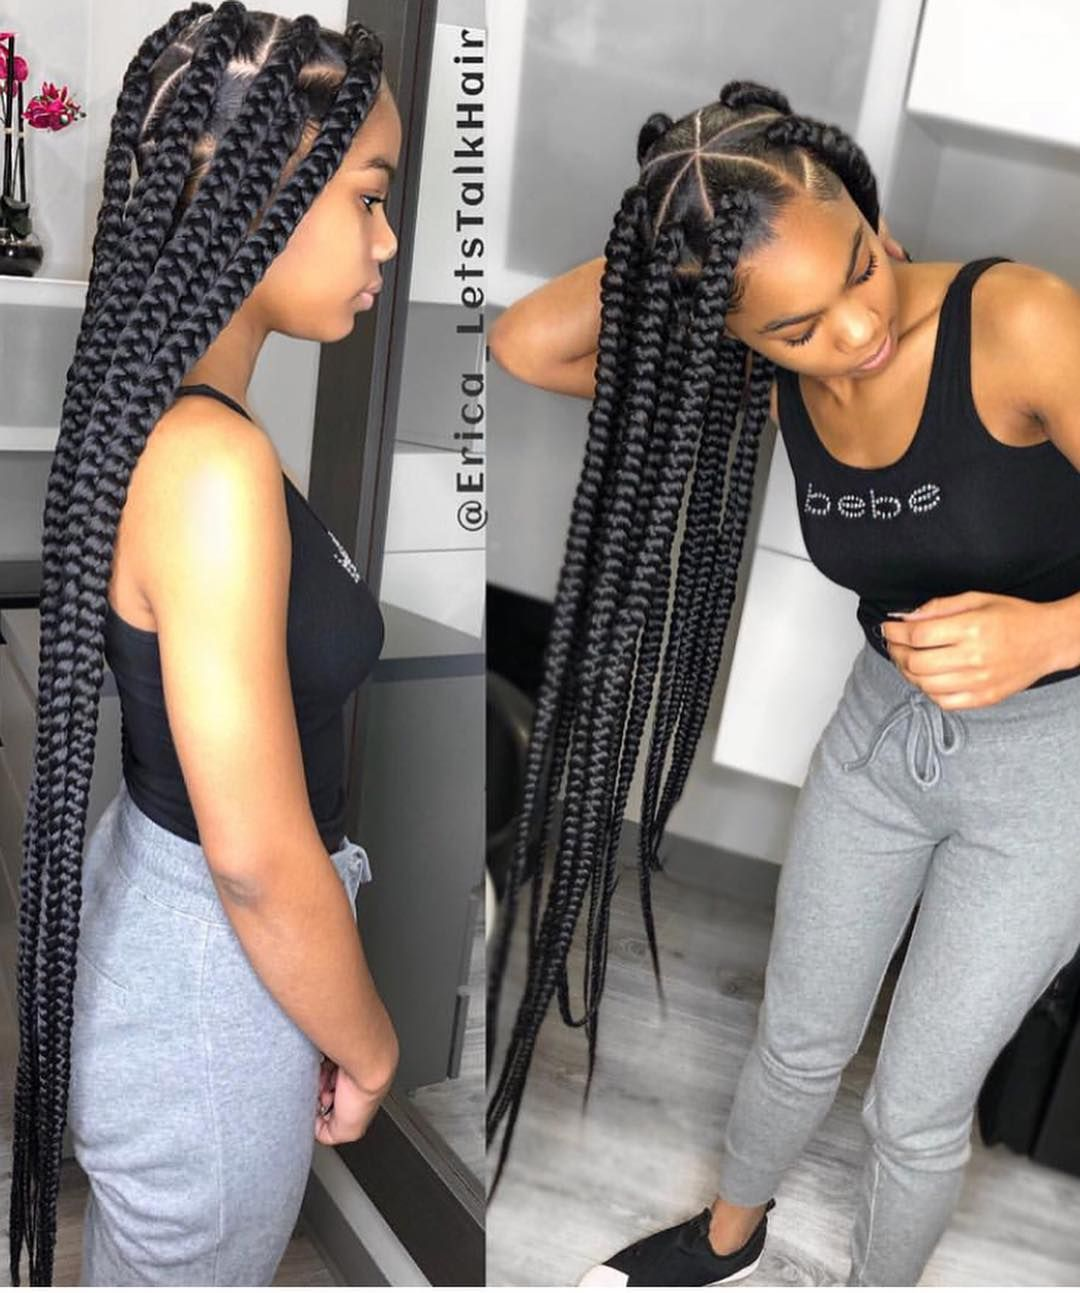 Voiceofhair Stylists Styles On Instagram Extra Long Triangle Box Braids By Erica Letstalkhair Braided Hairstyles Hair Styles Big Box Braids Hairstyles